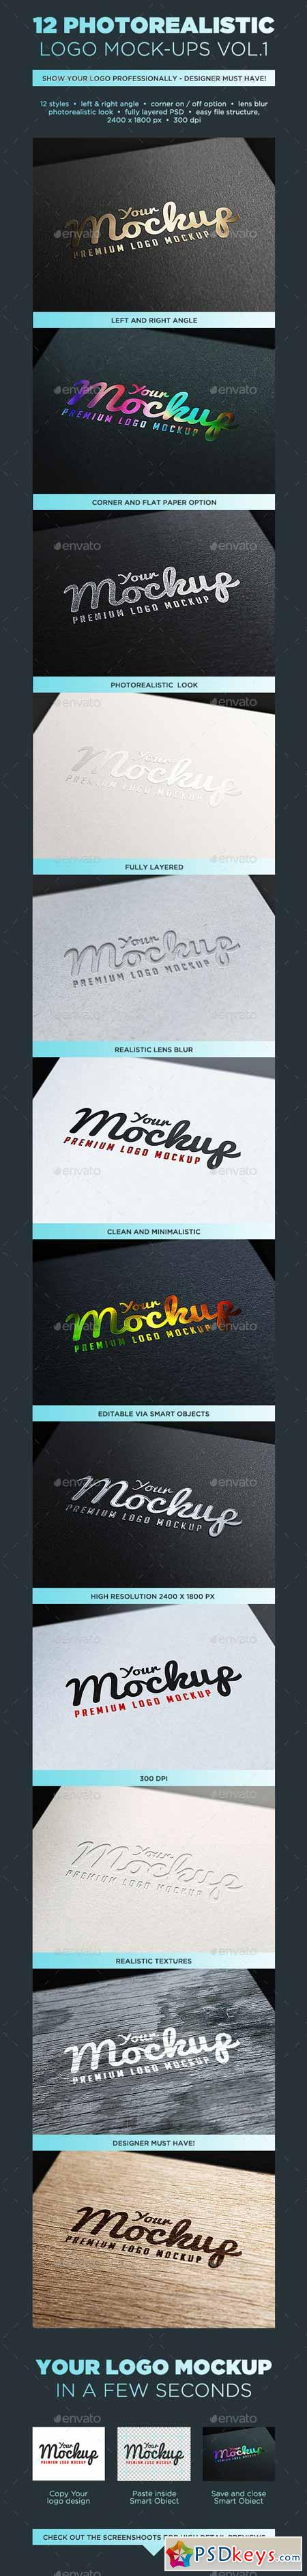 Your Mockup - Logo Mockups VOL.1 10203925